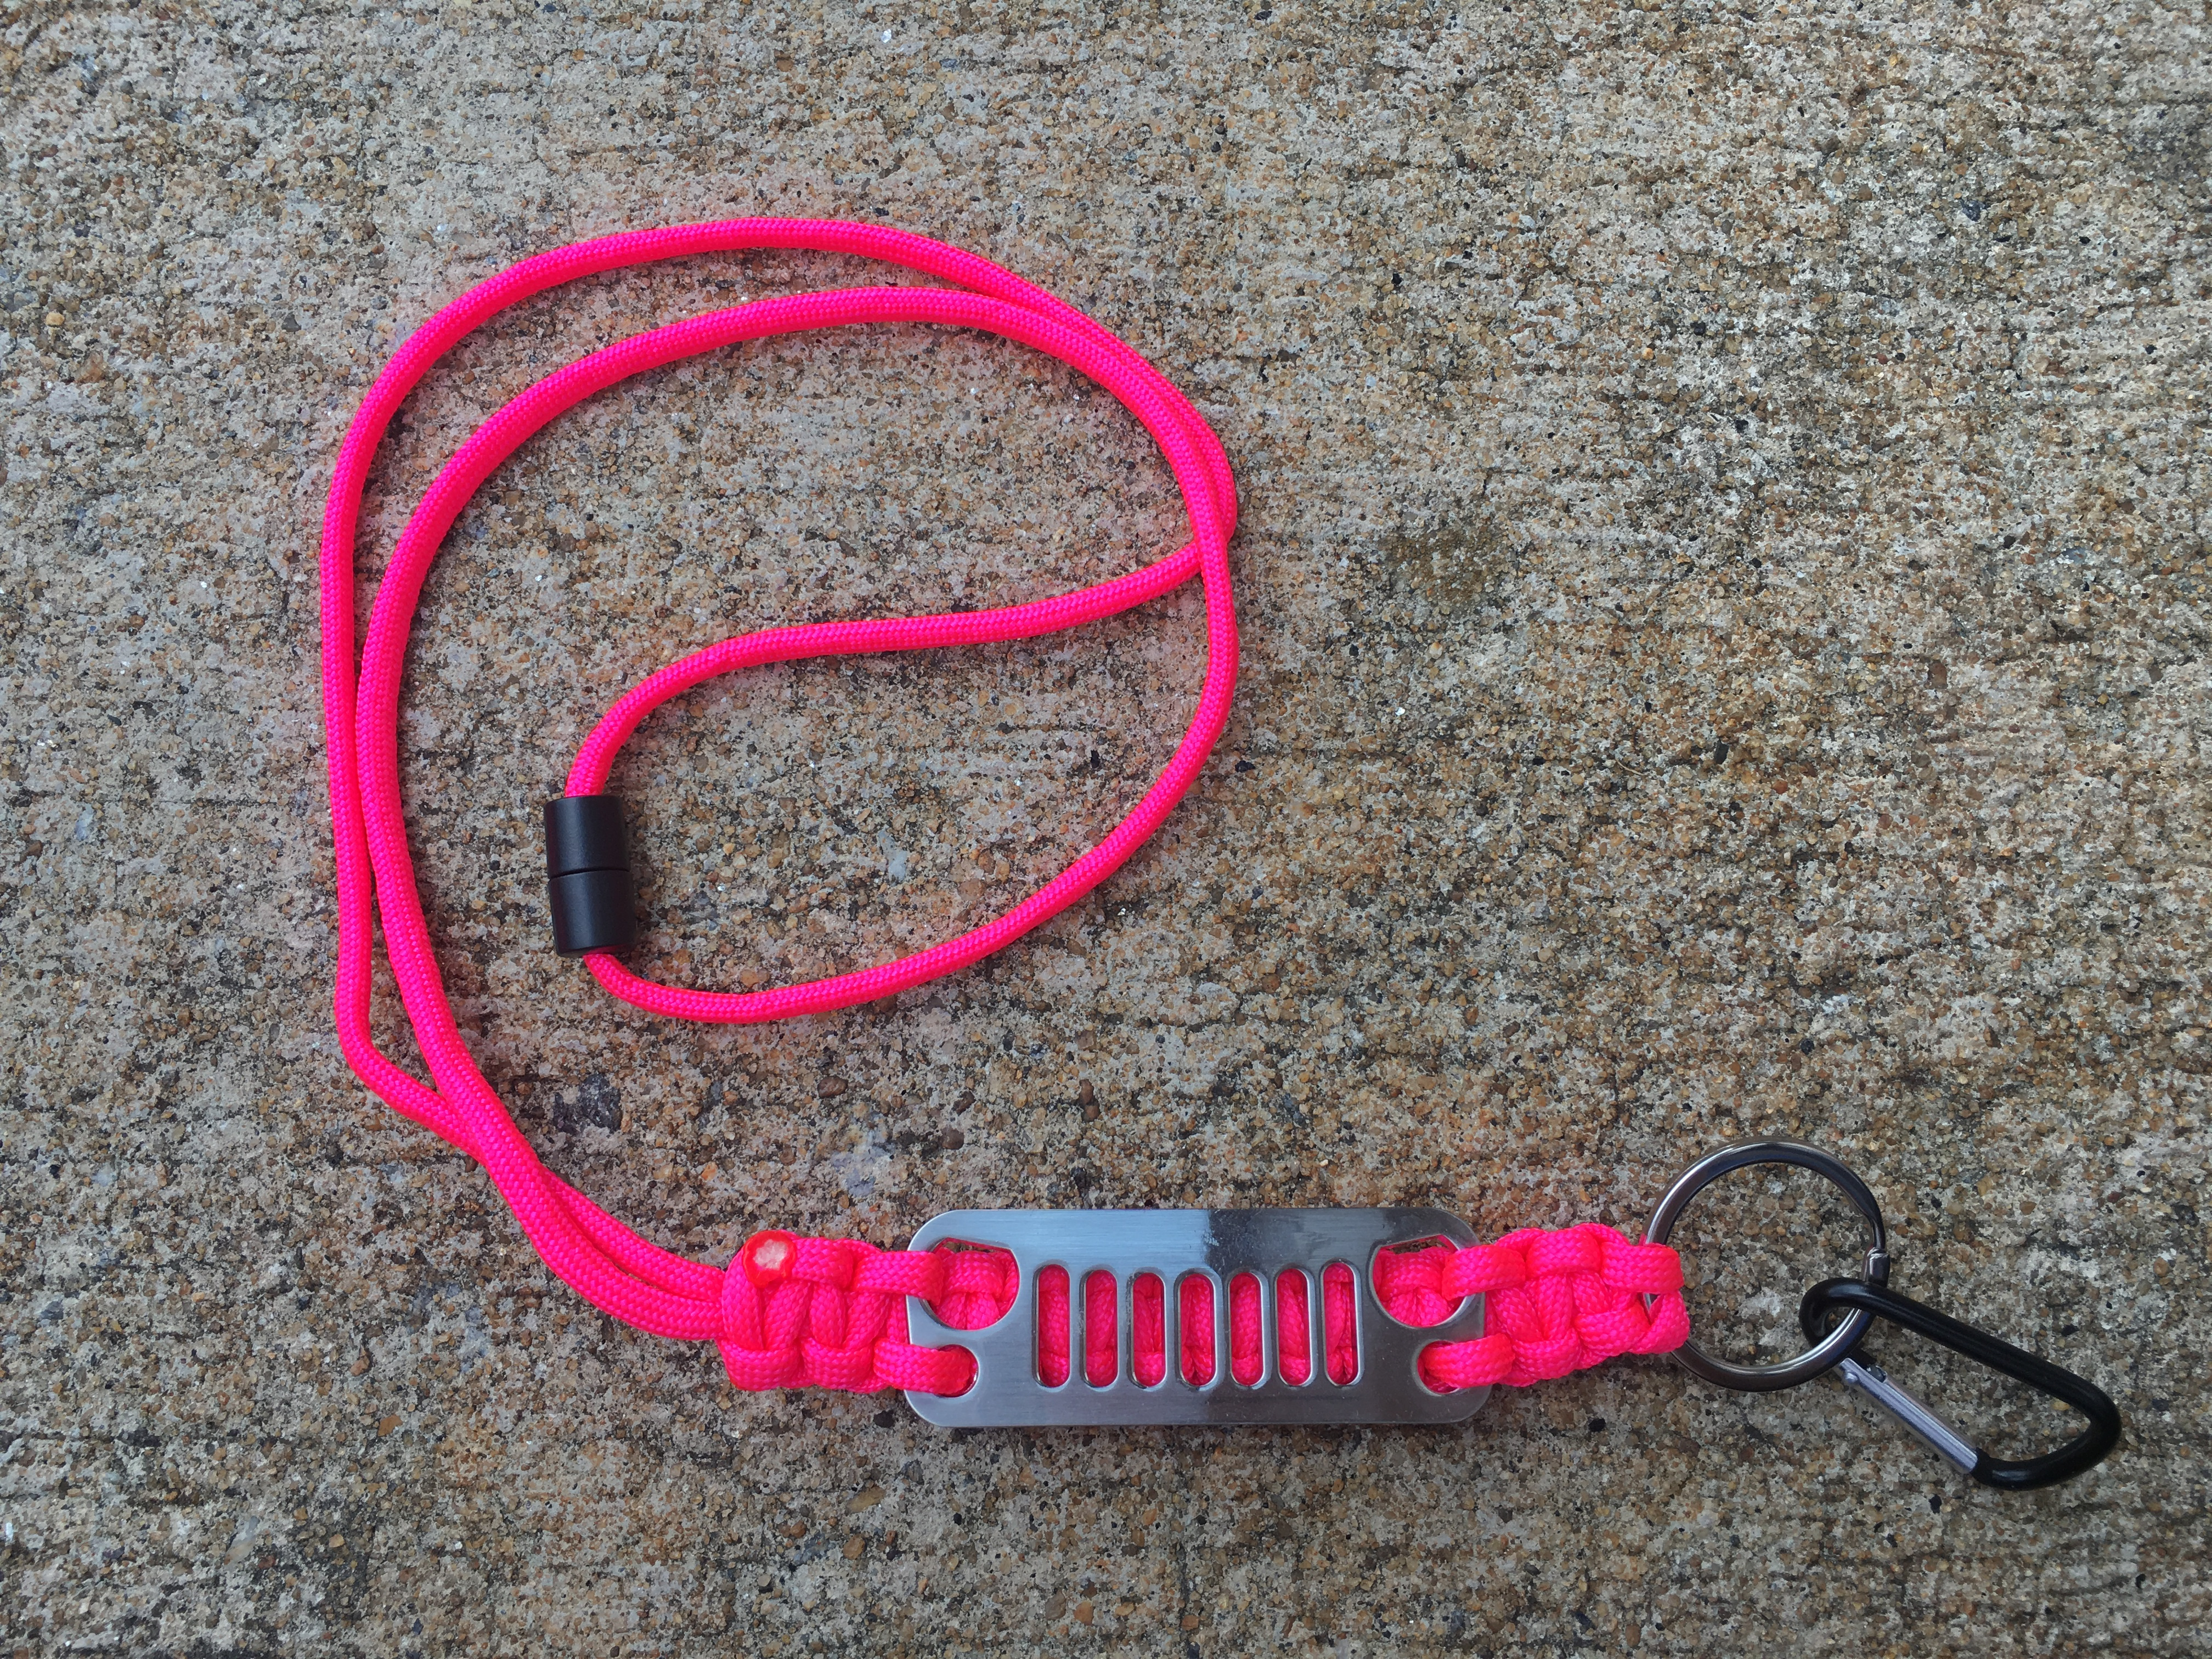 Jeep Grille Paracord Lanyard in Pink with Carabiner Clip